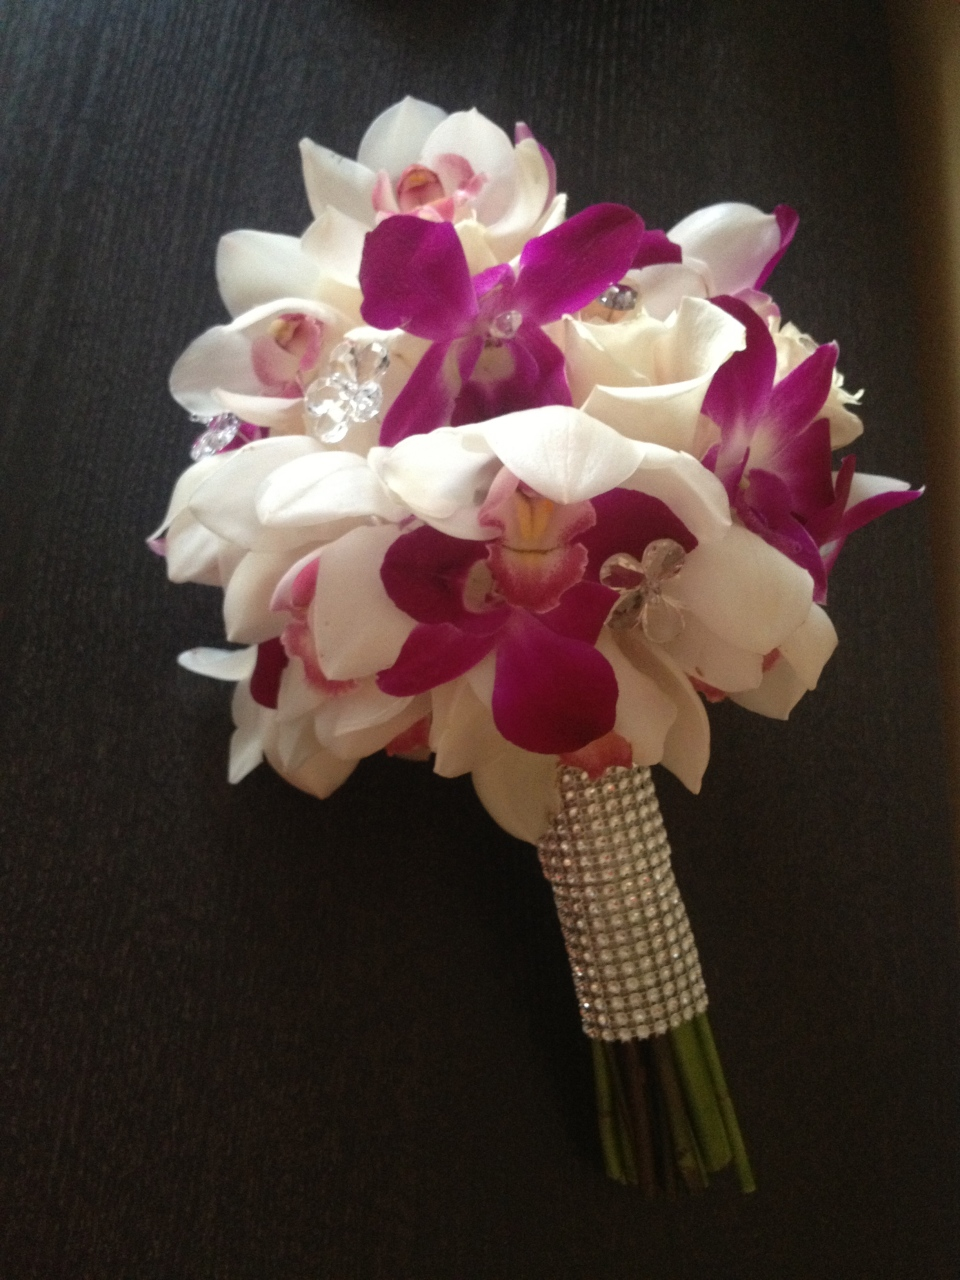 Bridal bouquet of cymbidium and dendrobium orchids with roses and crystal detailing